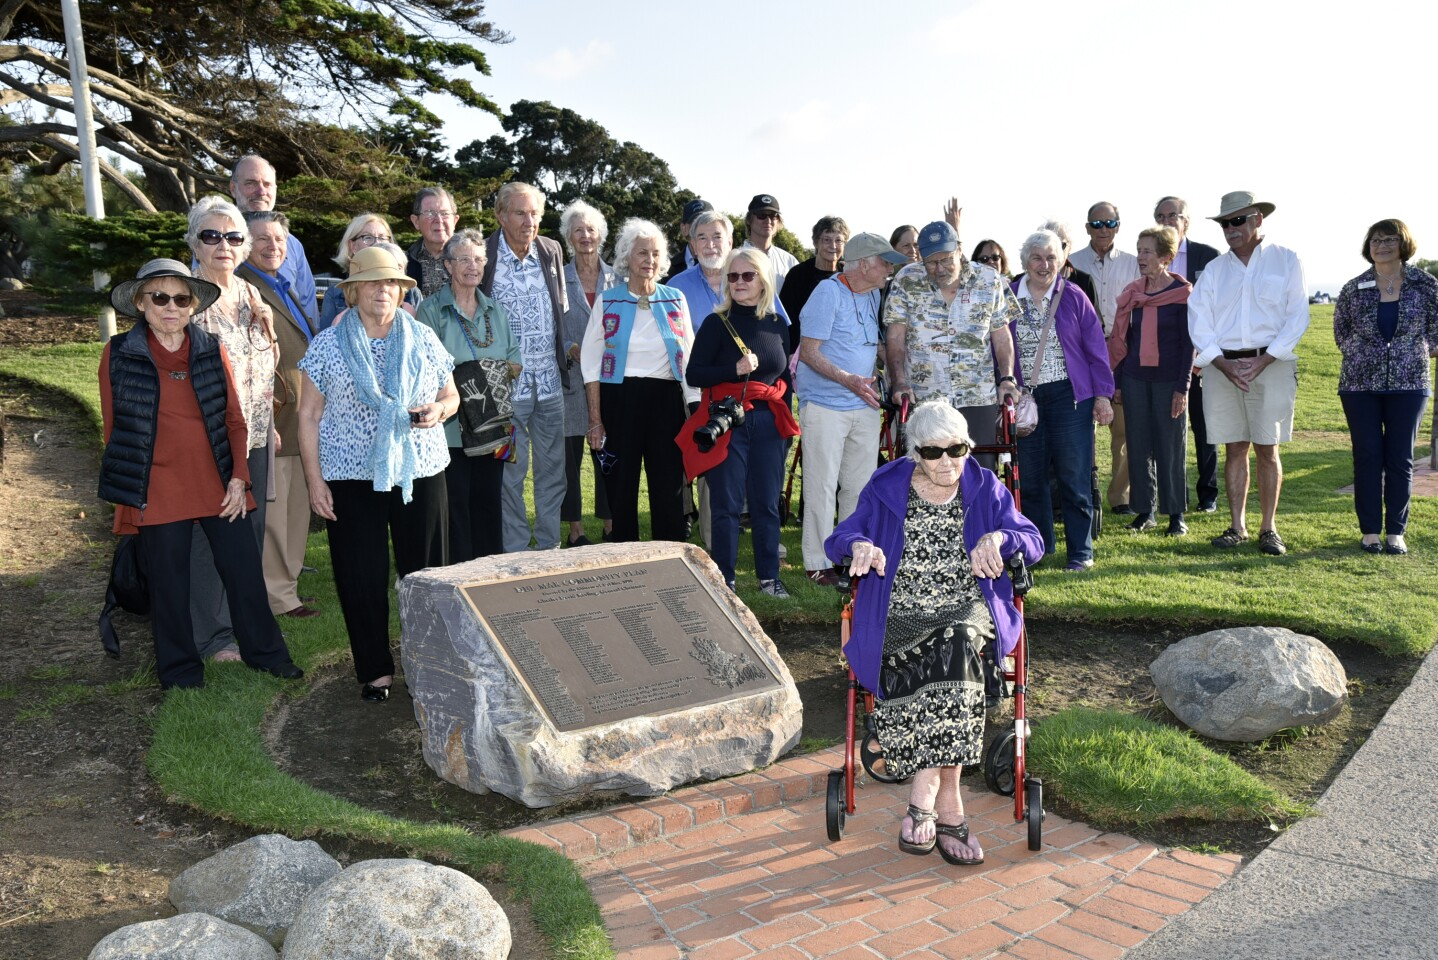 Members of the Del Mar Community Plan Task Force, along with friends and family, united to celebrate 45 years of the Del Mar Community Plan and Del Mar's 60 birthday and honor Charles D. Keeling who was known as the 'President of Del Mar'